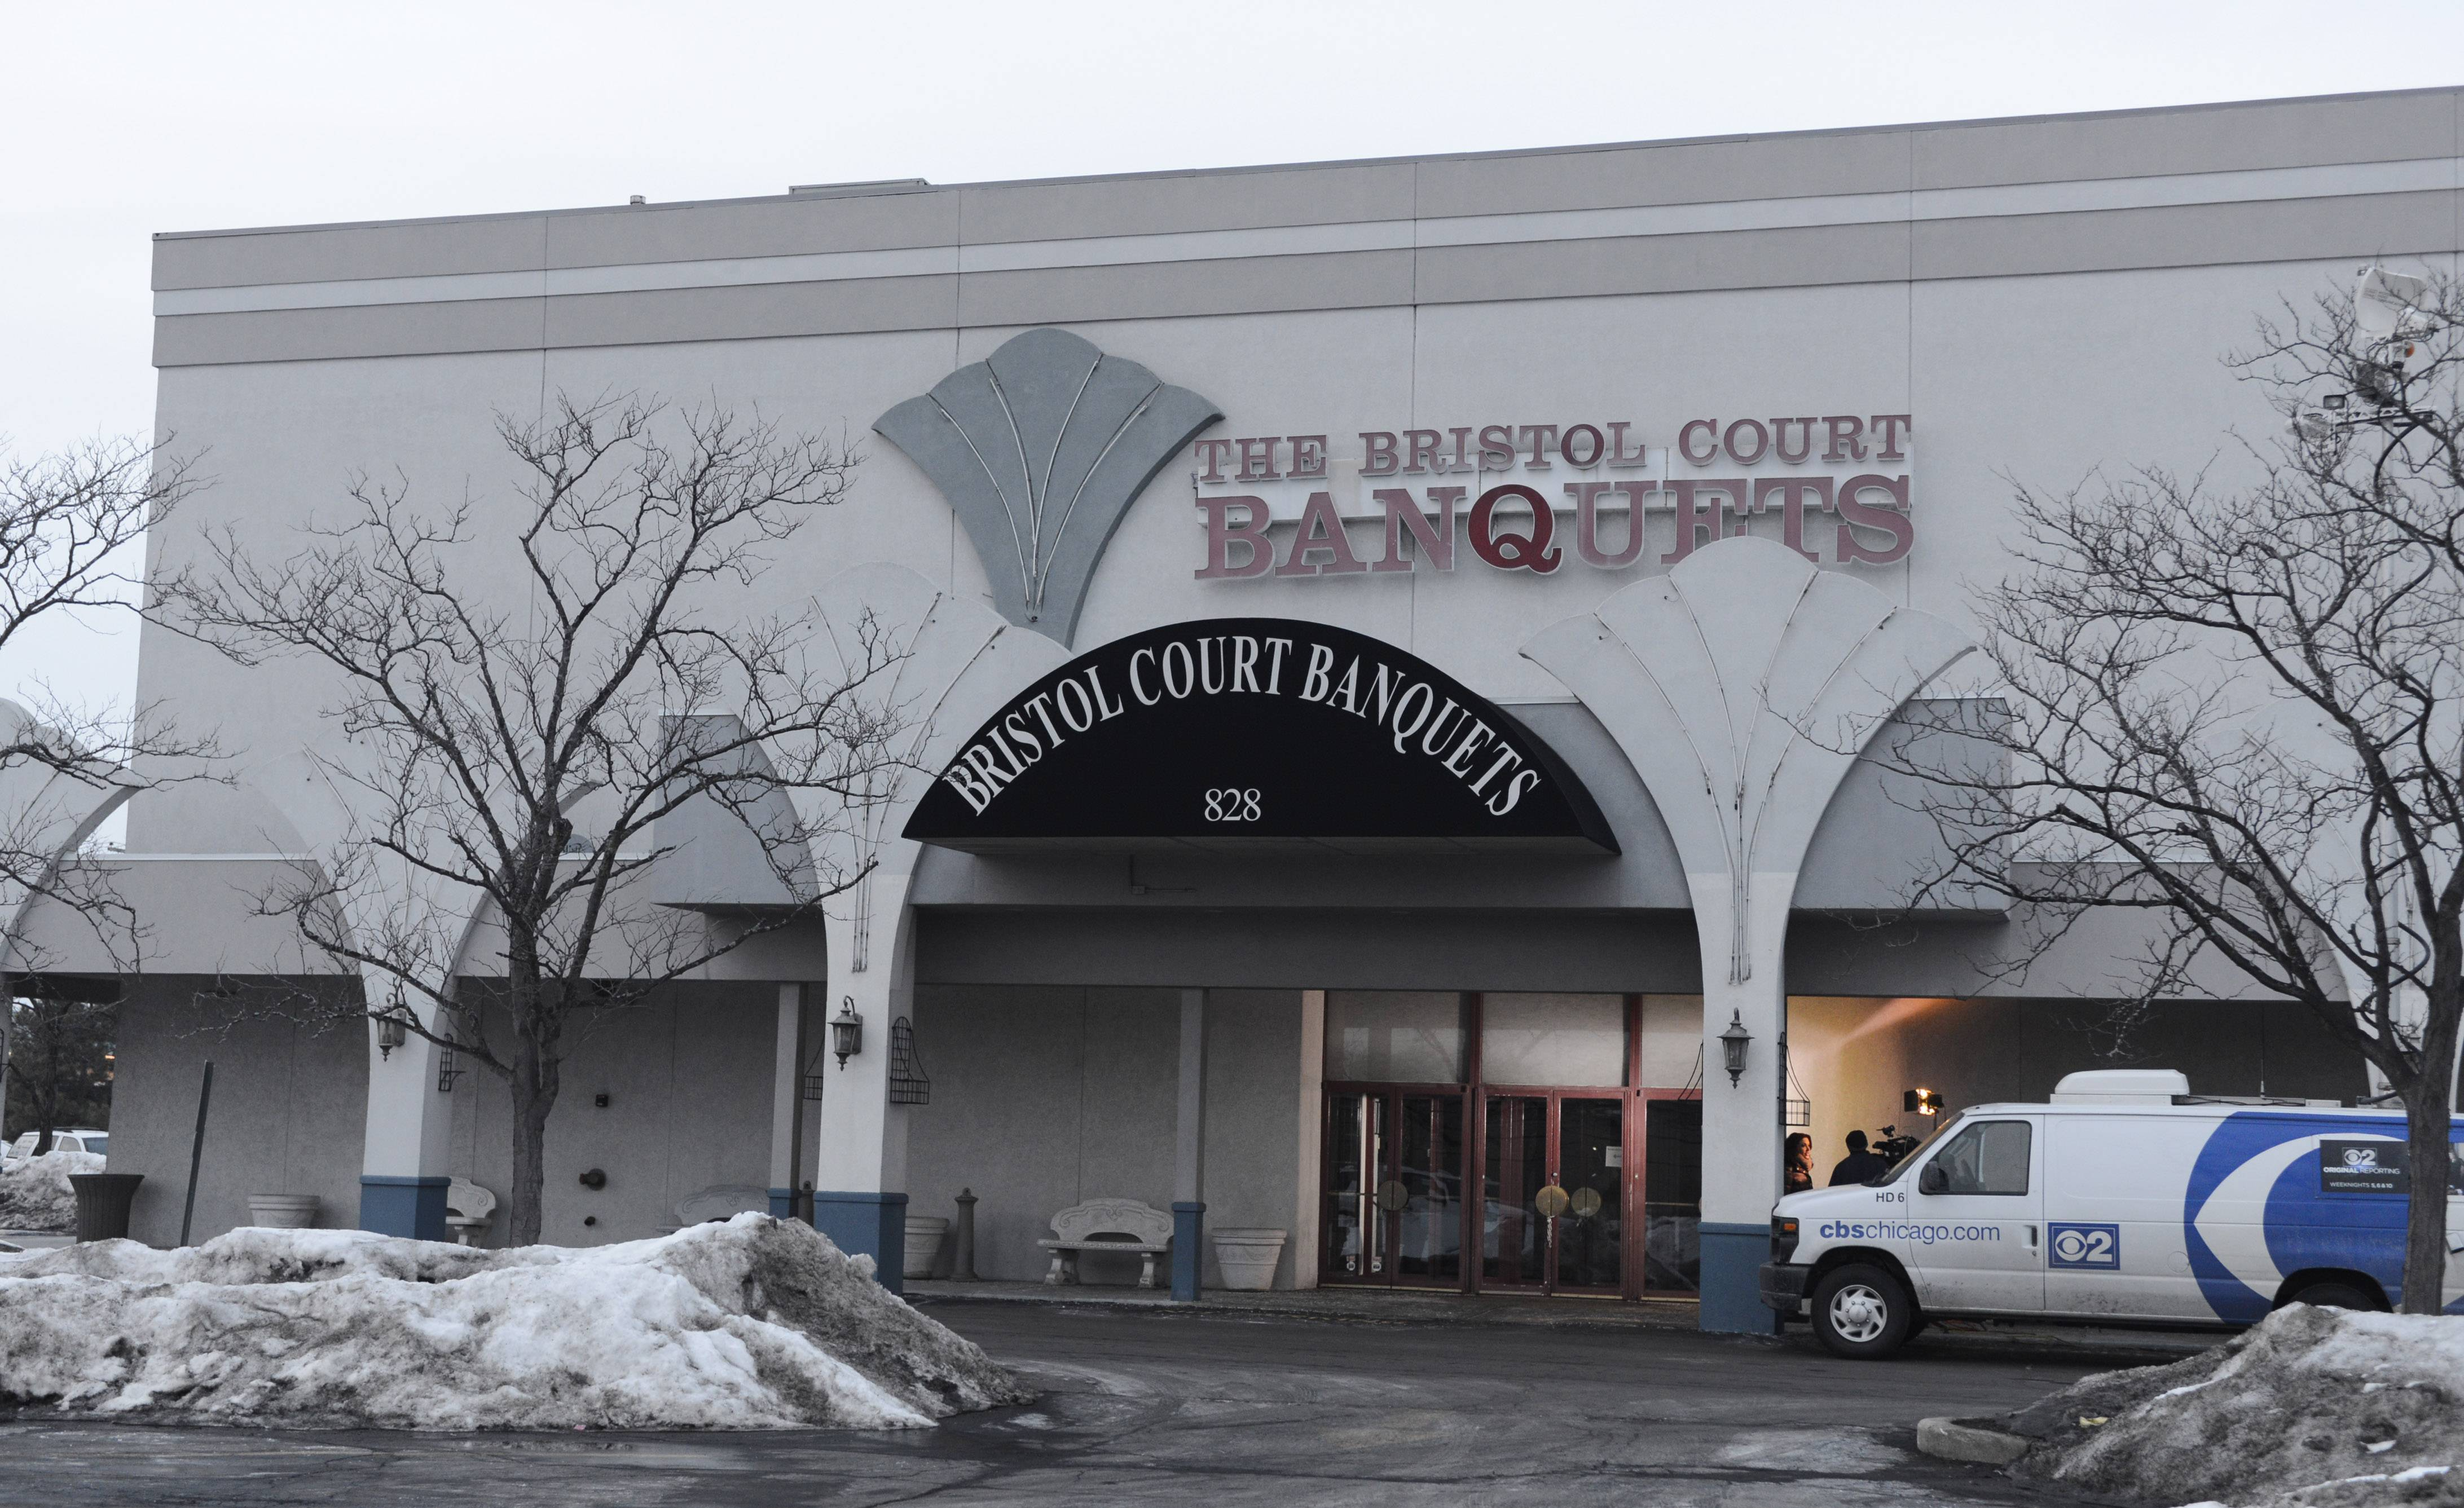 Bristol Court Banquets in Mount Prospect is believed to have been closed Tuesday. Its phone number and website are no longer working.